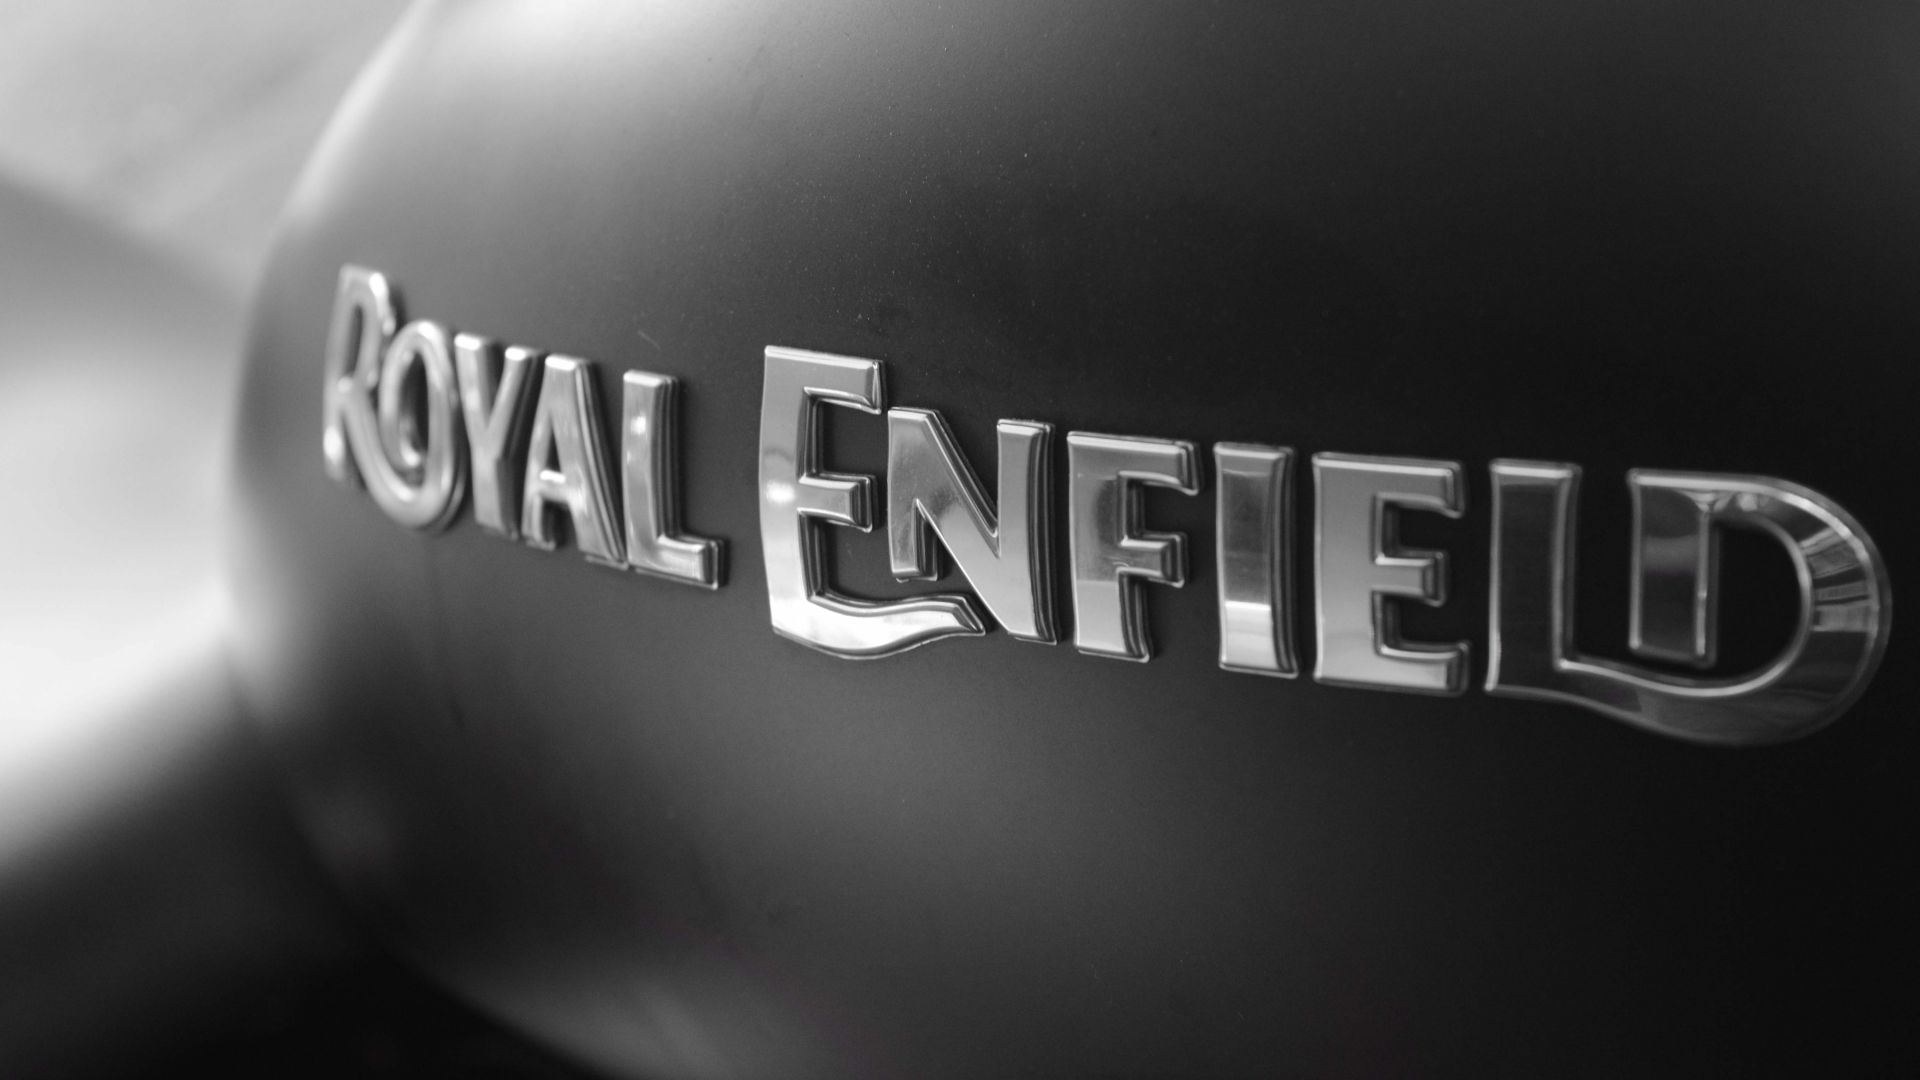 Royal Enfield Hd Wallpapers Desktop Wallpaper Bike Bullet Royal Enfield Monochrome